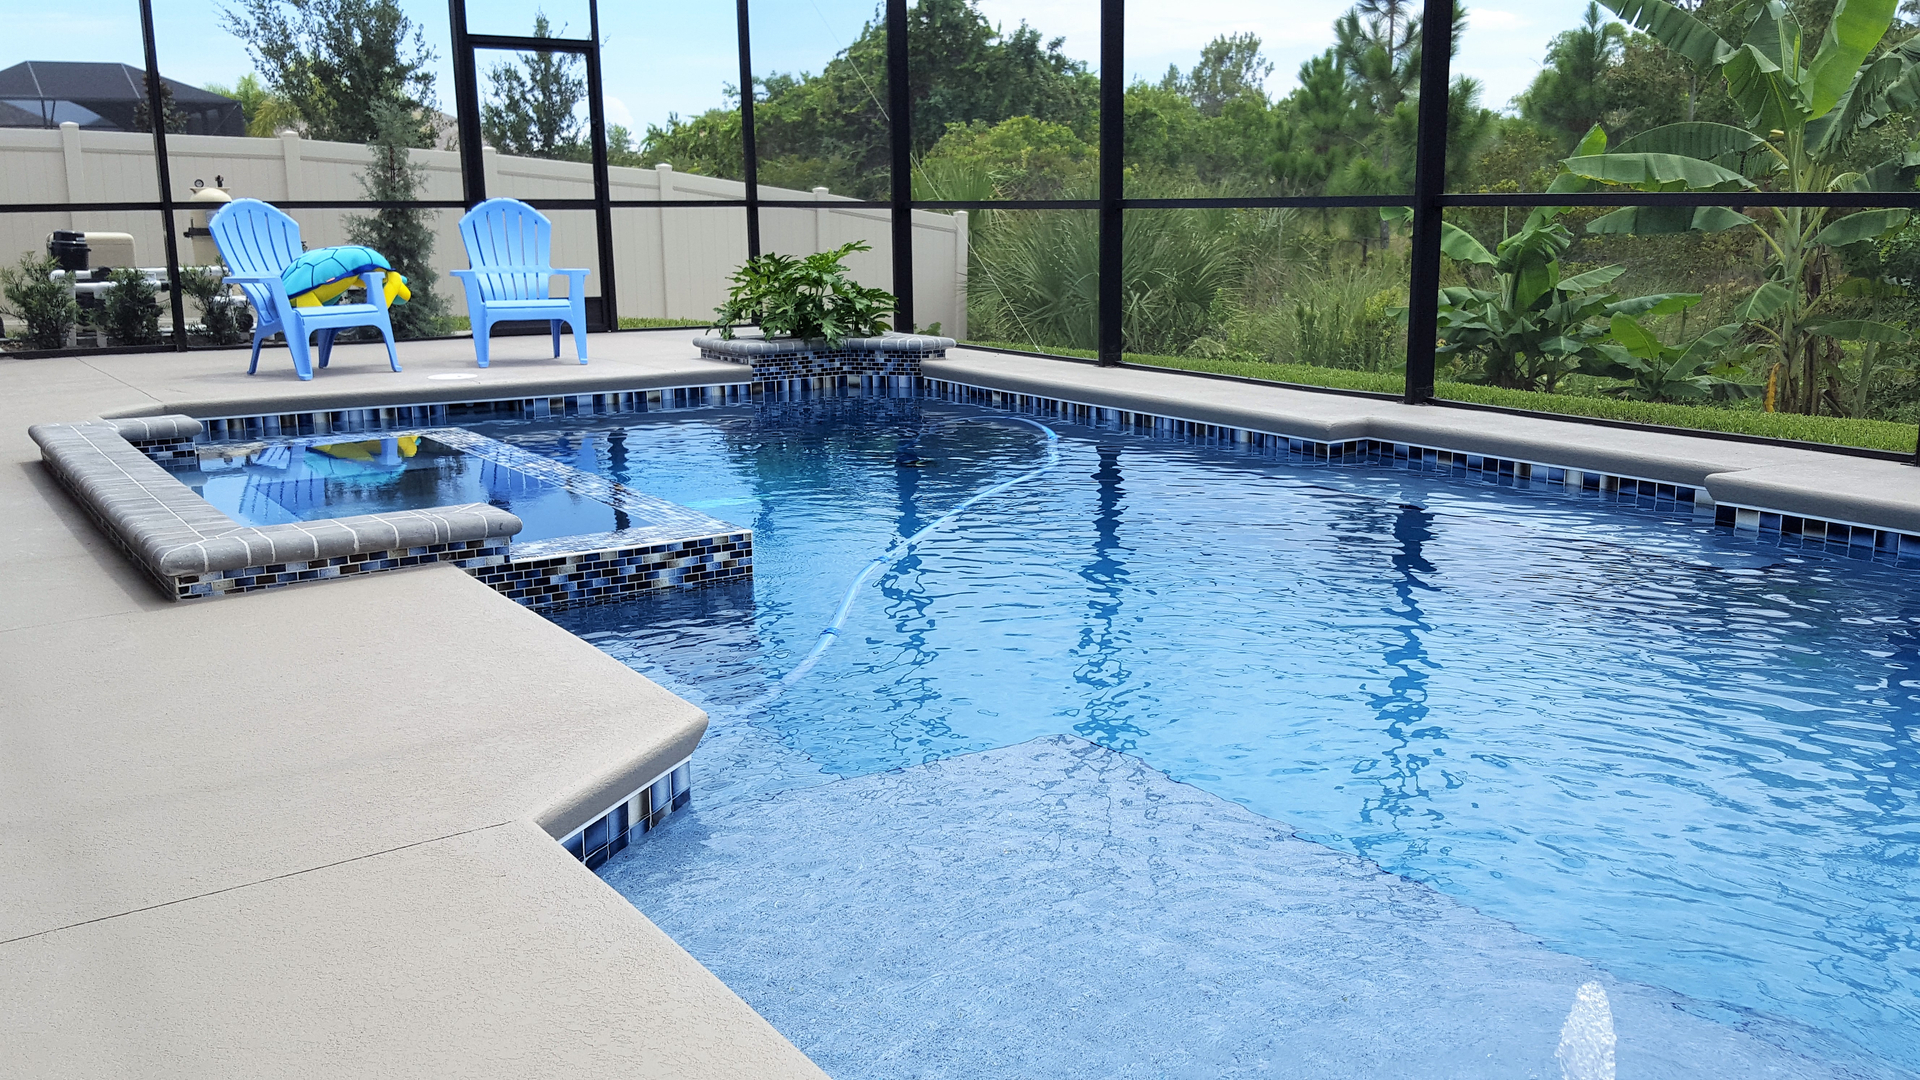 Swimming Pool Builder serving Titusville, Melbourne & all of